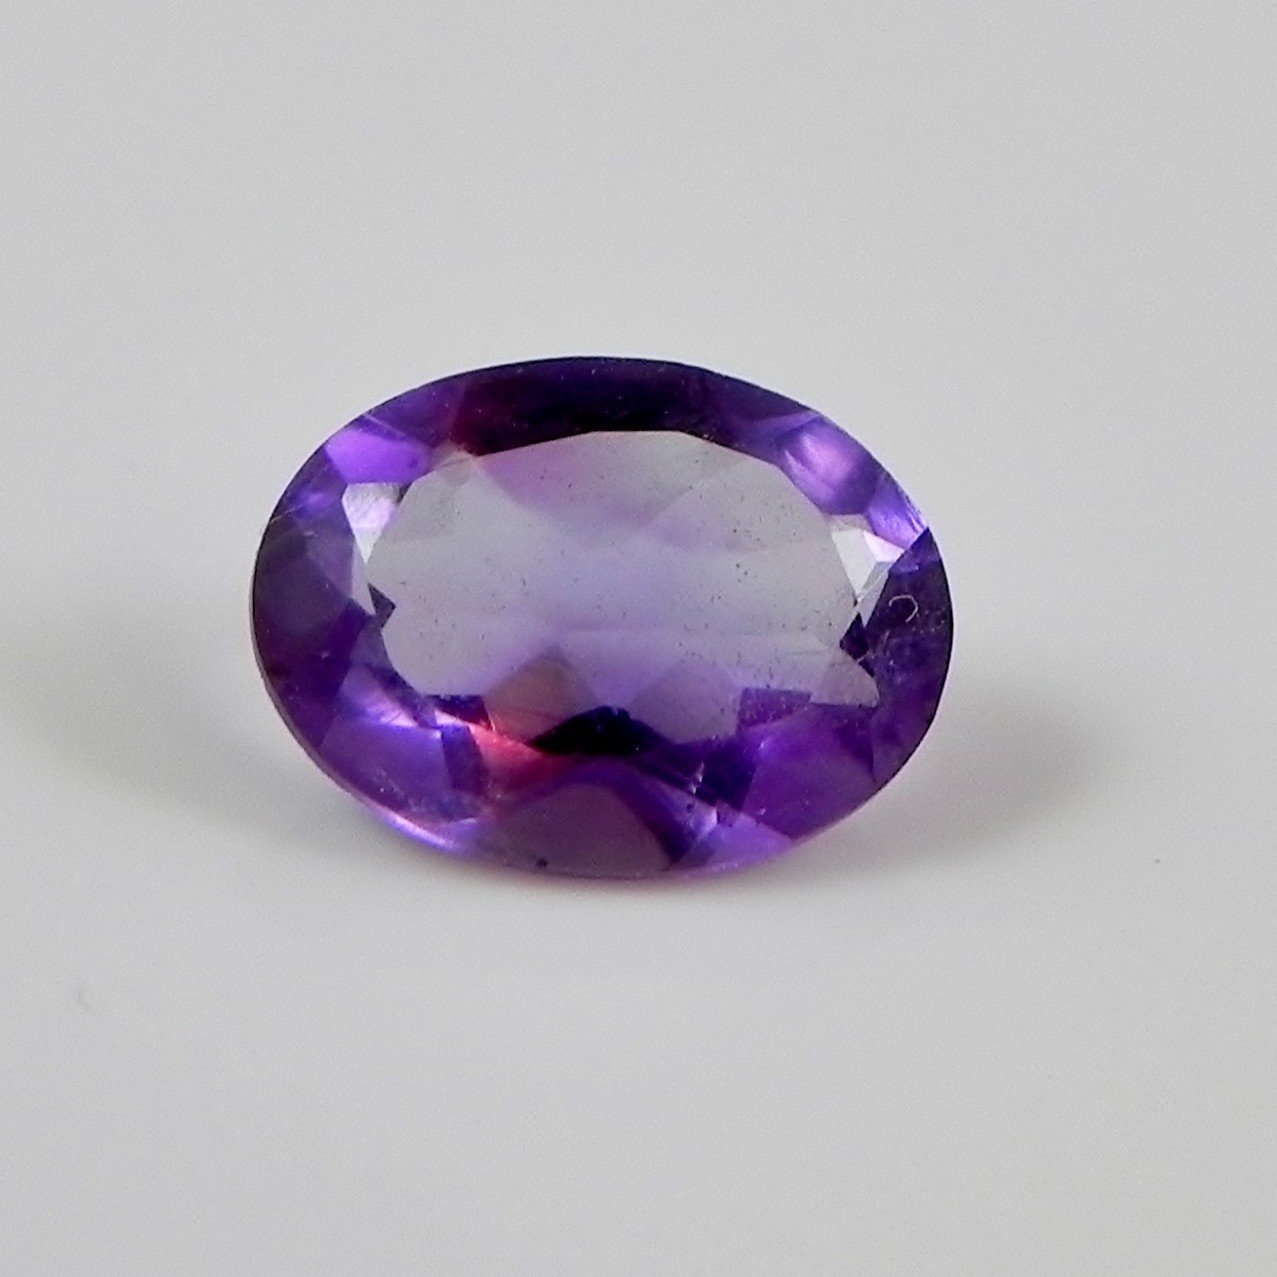 Certified Natural Amethyst AAA Quality 10x12 mm Faceted Oval 1 pc loose gemstone